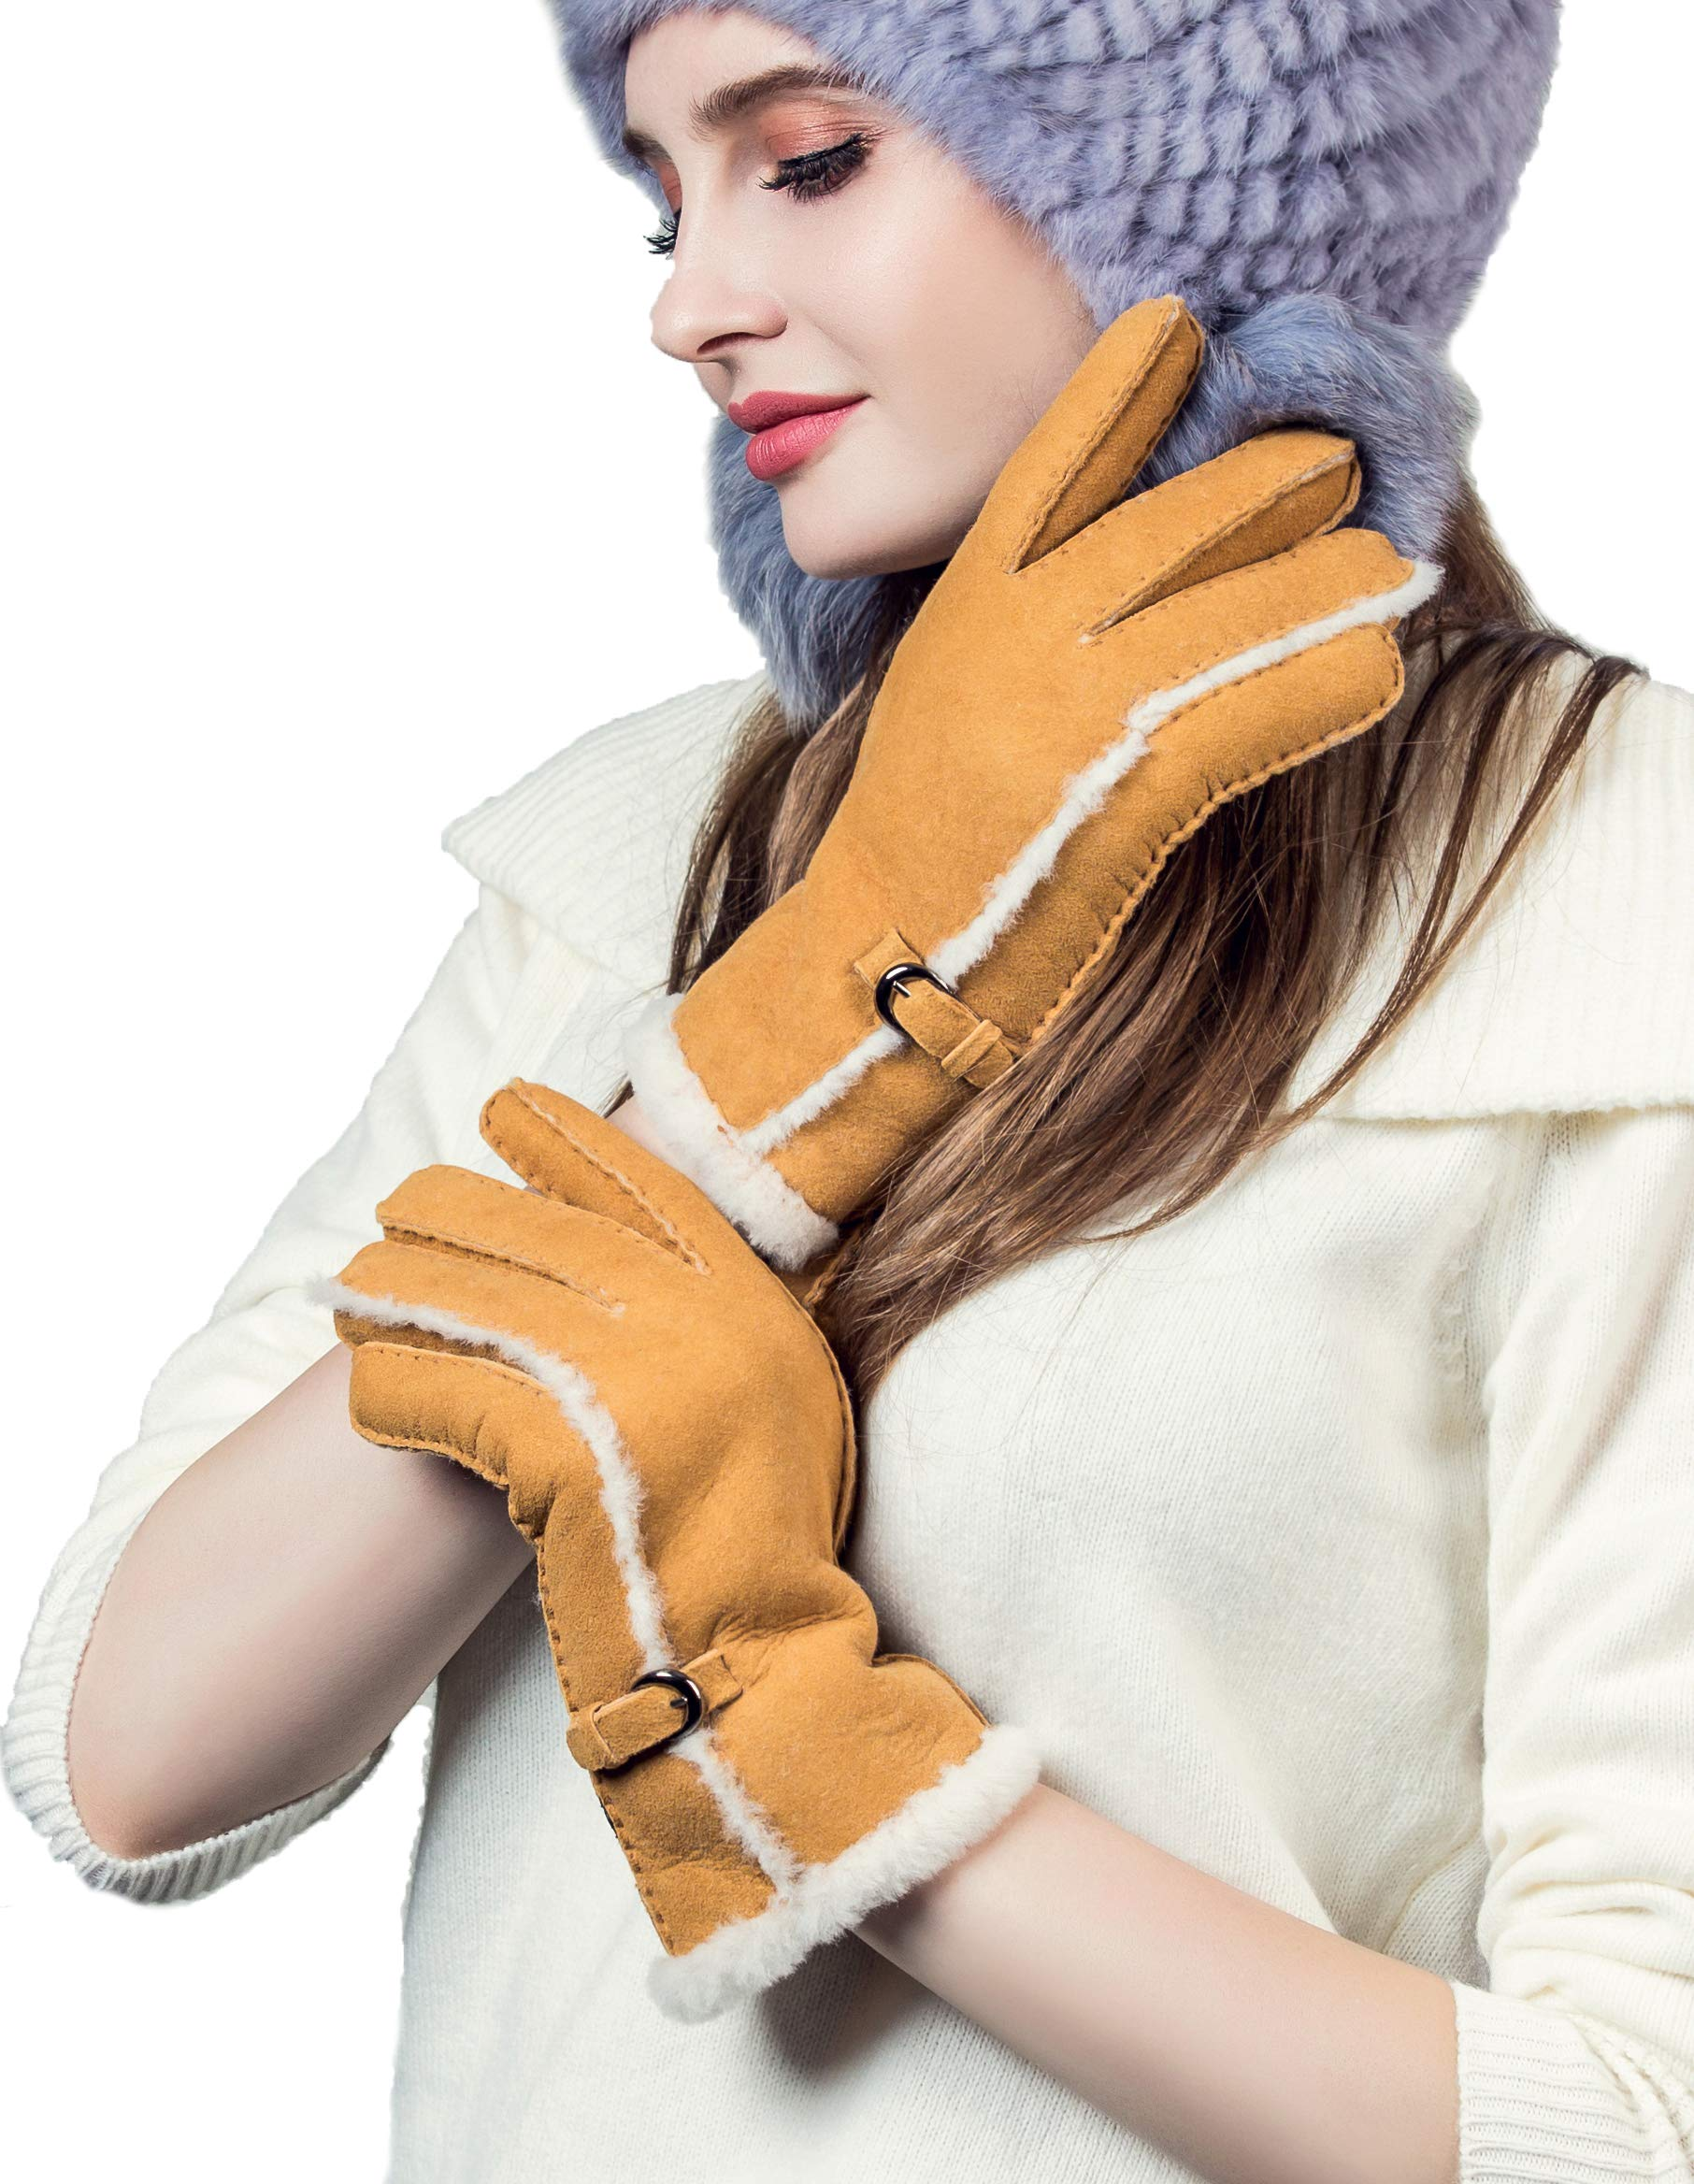 c3e84106d YISEVEN Women's Merino Rugged Sheepskin Shearling Leather Gloves Mittens  Sherpa Fur Cuff Thick Wool Lined and Heated Warm for Winter Cold Weather  Dress ...